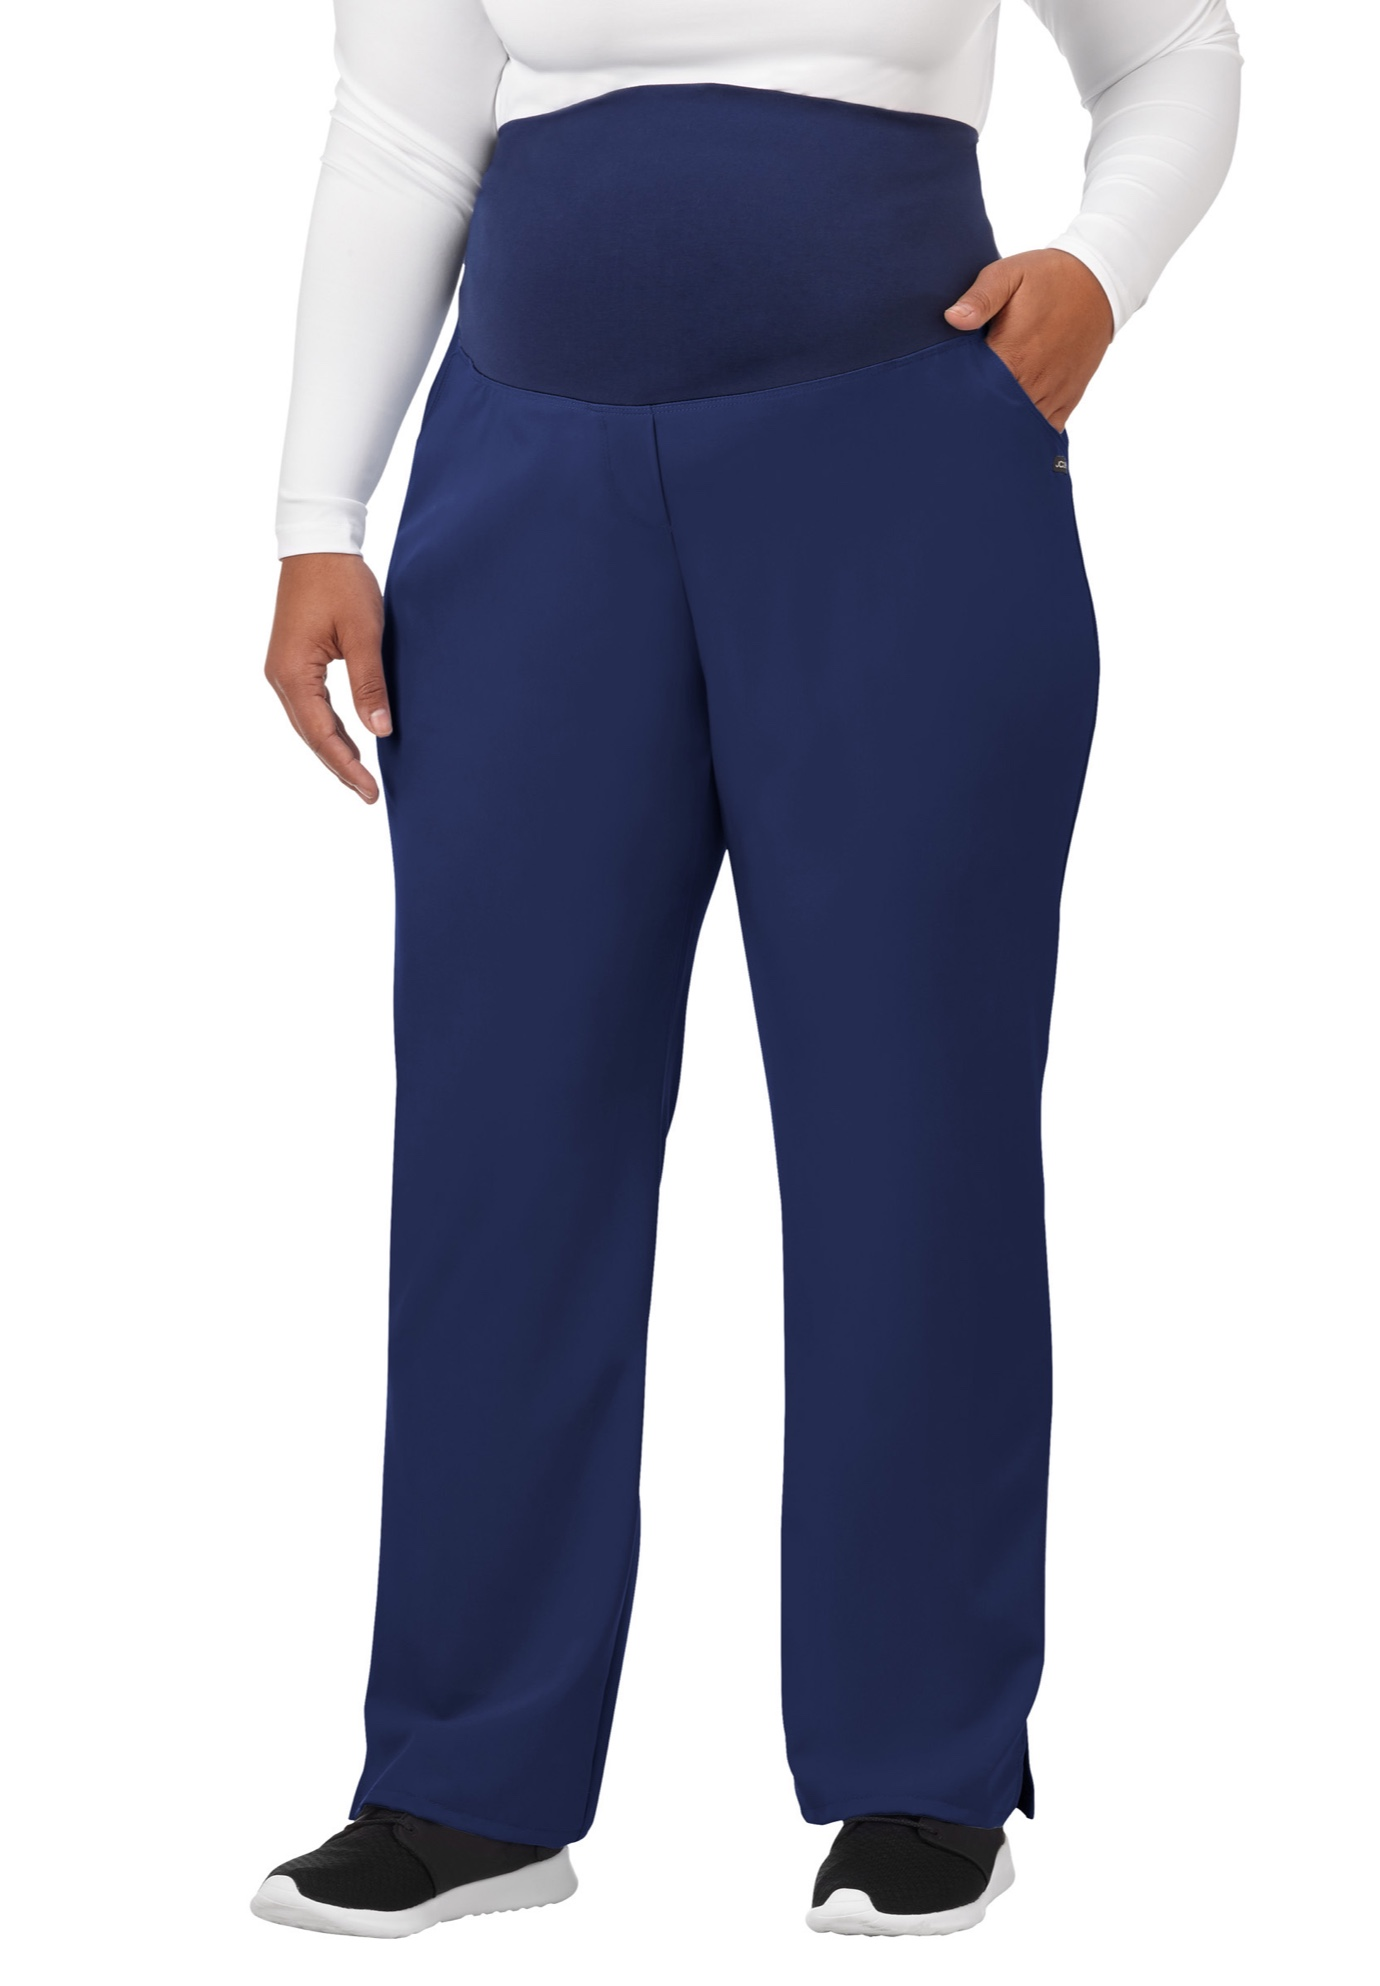 Jockey Scrubs Women's Ultimate Maternity Pant,